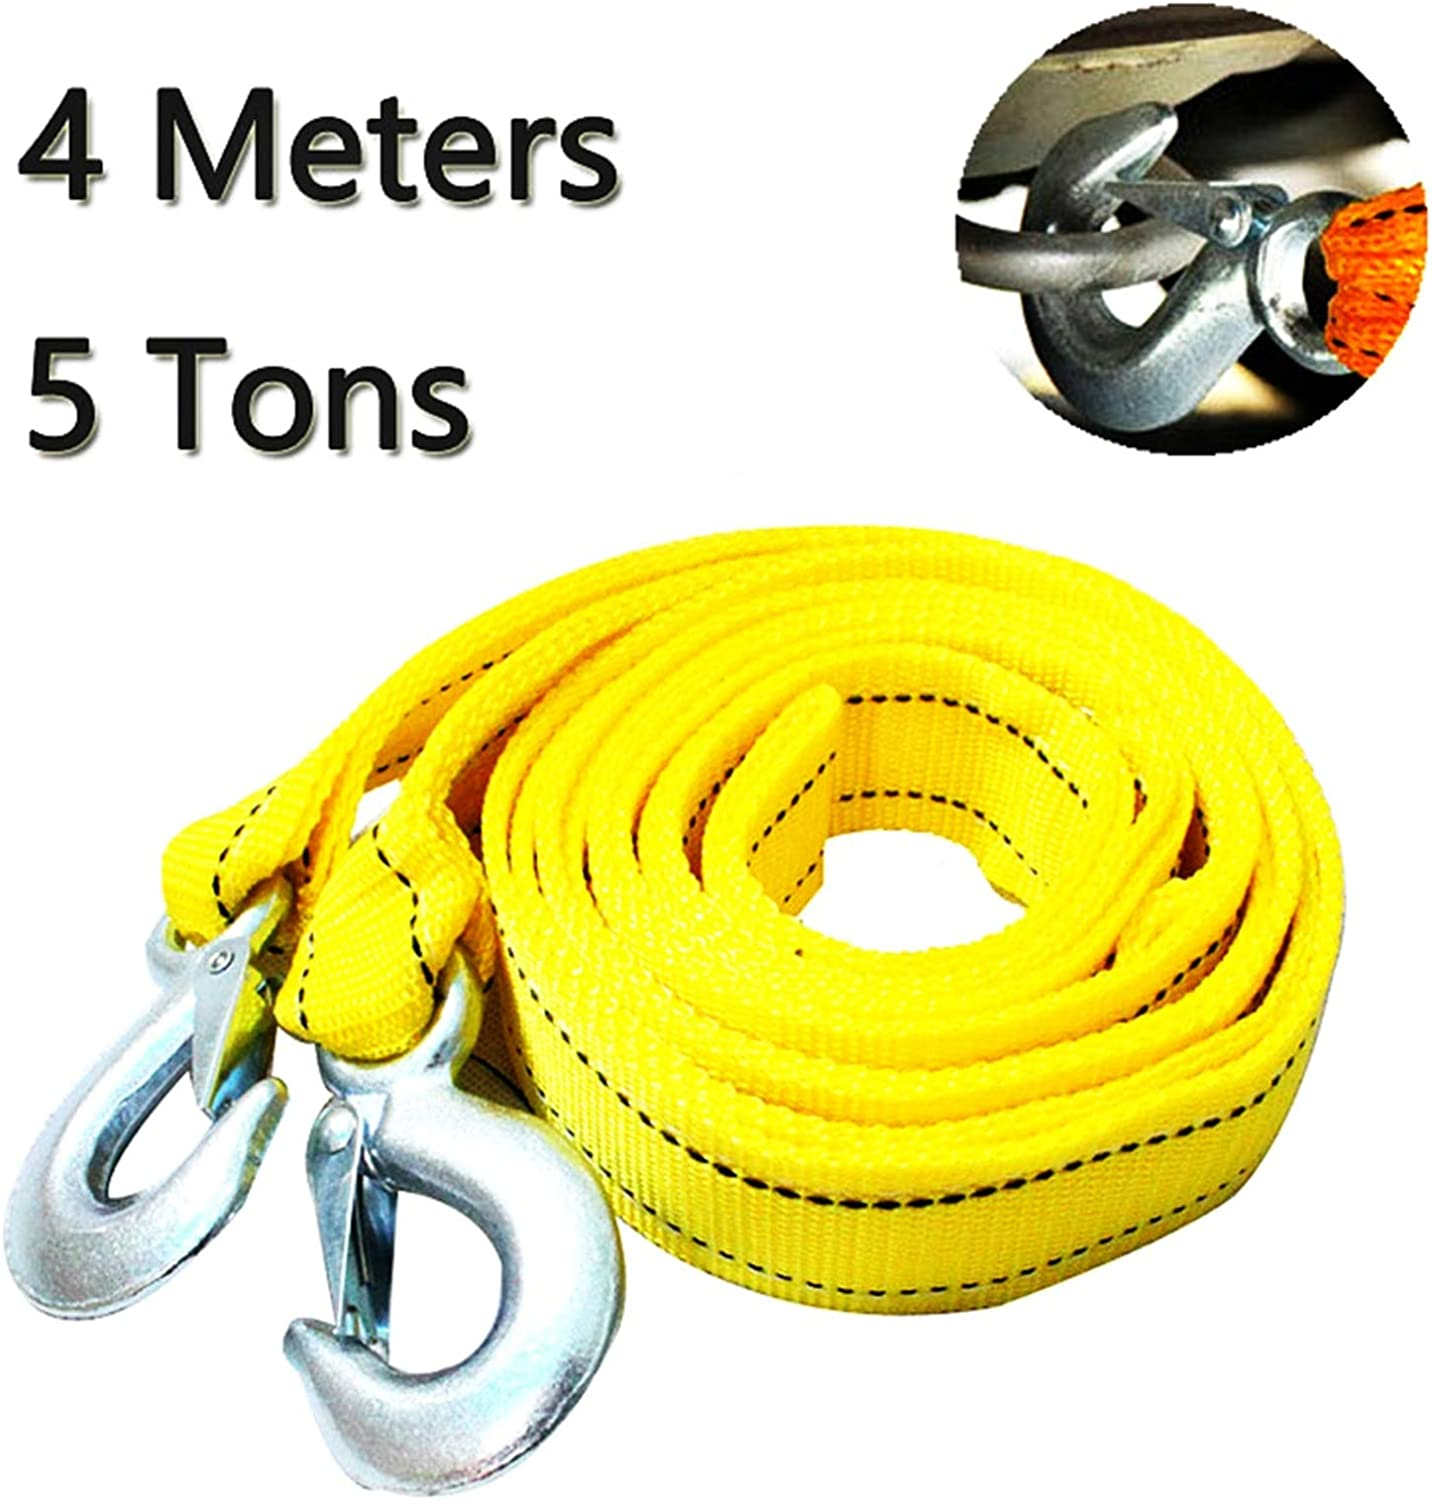 MING-BIN Winch Rope Towing Rare Winches 4M Selling Heavy Ton C 5 Car Tow Duty